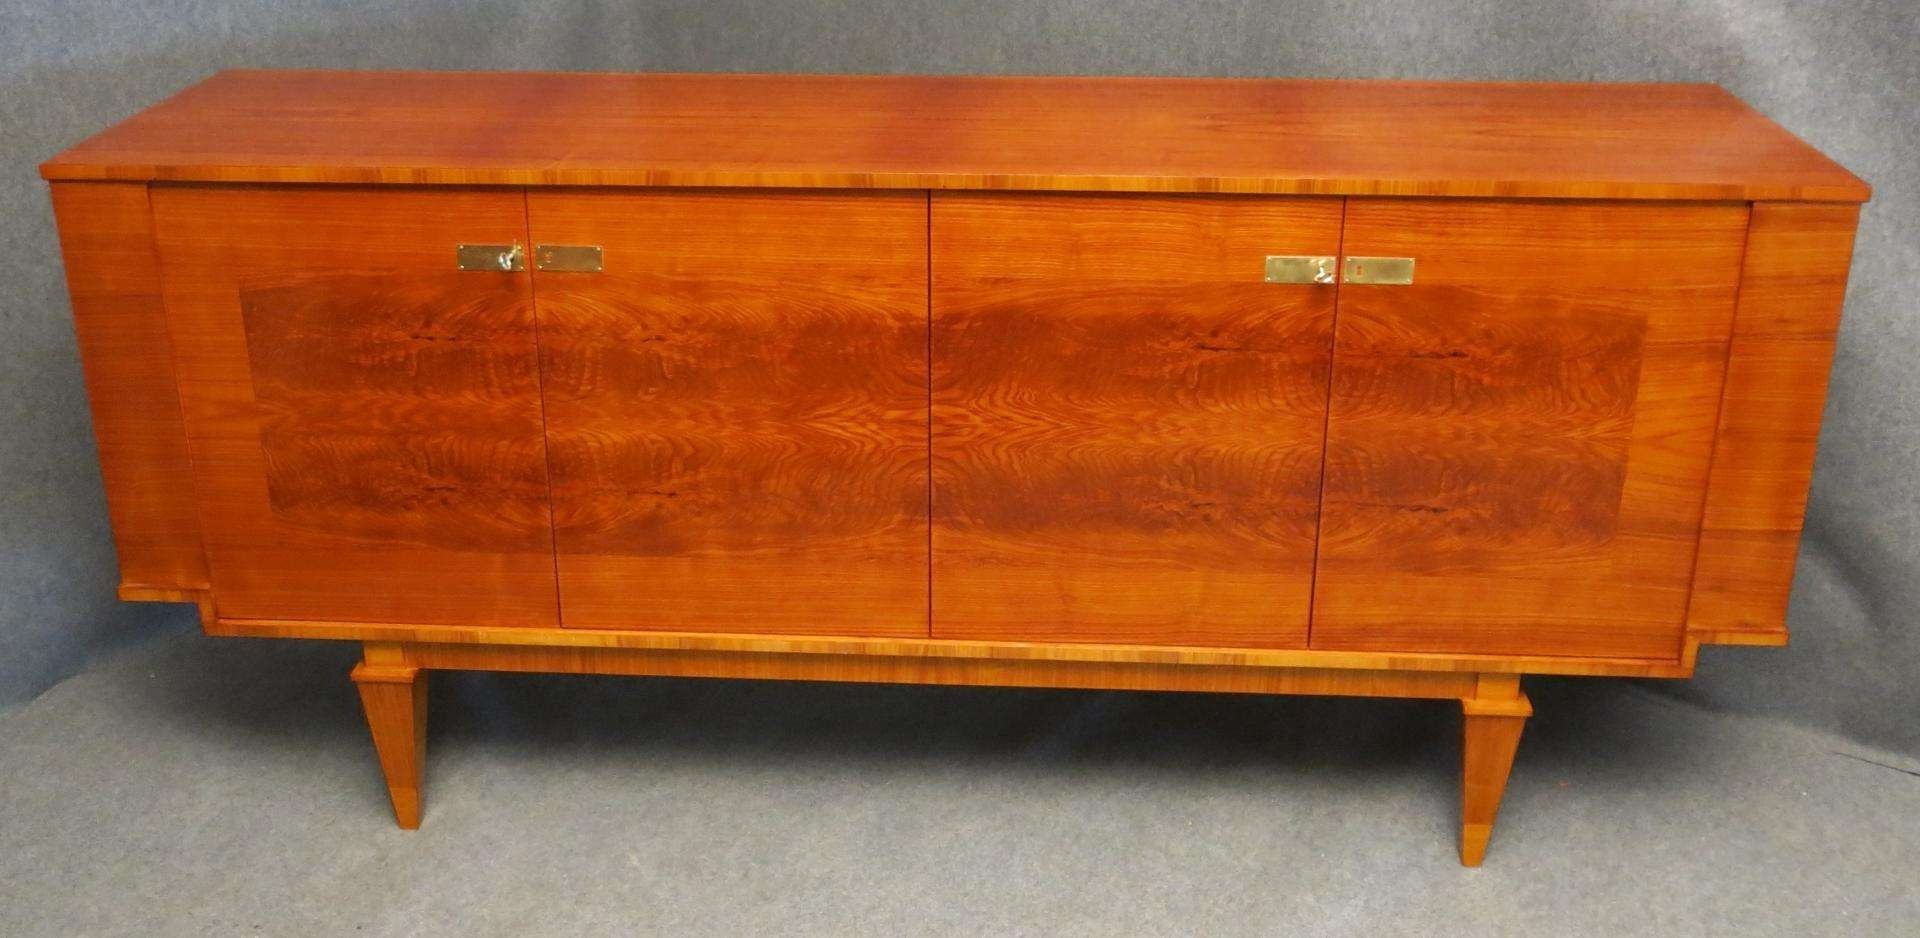 French Art Deco Sideboard, 1920S For Sale At Pamono Inside Art Deco Sideboards (View 10 of 20)